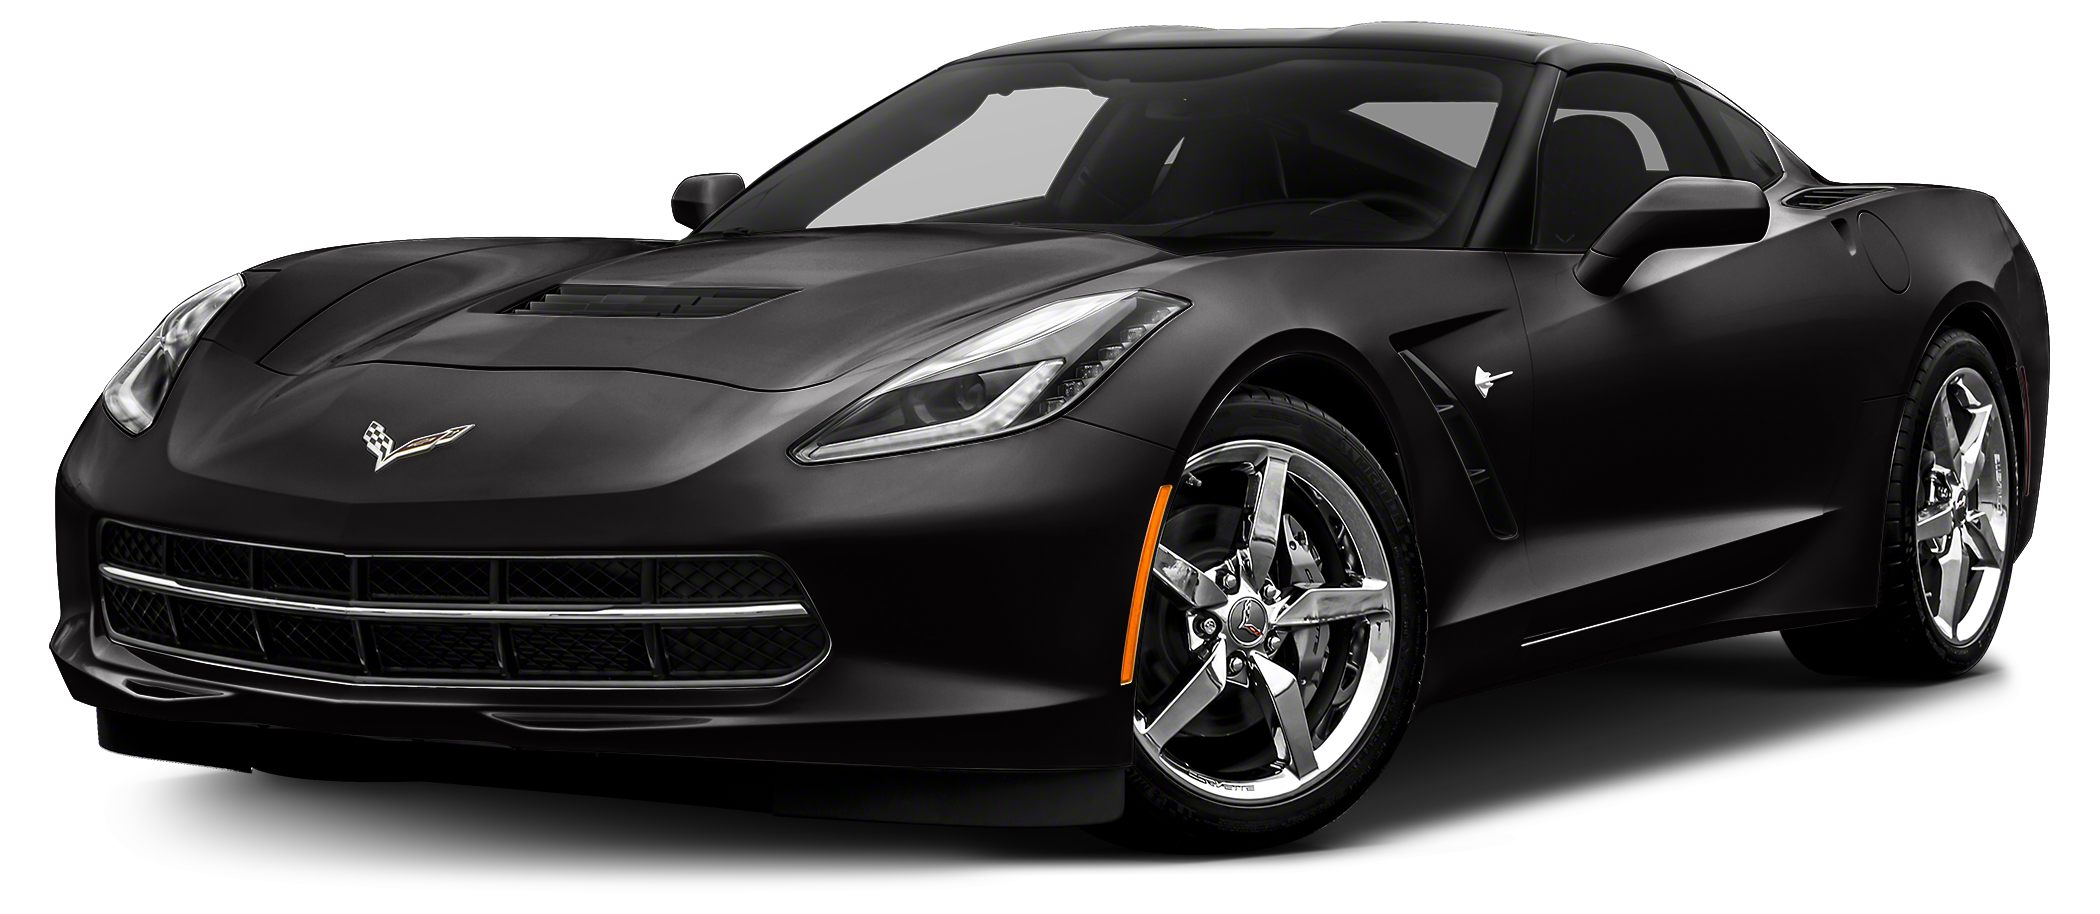 2015 Chevrolet Corvette Stingray Chevrolet Certified CARFAX 1-Owner Excellent Condition ONLY 13